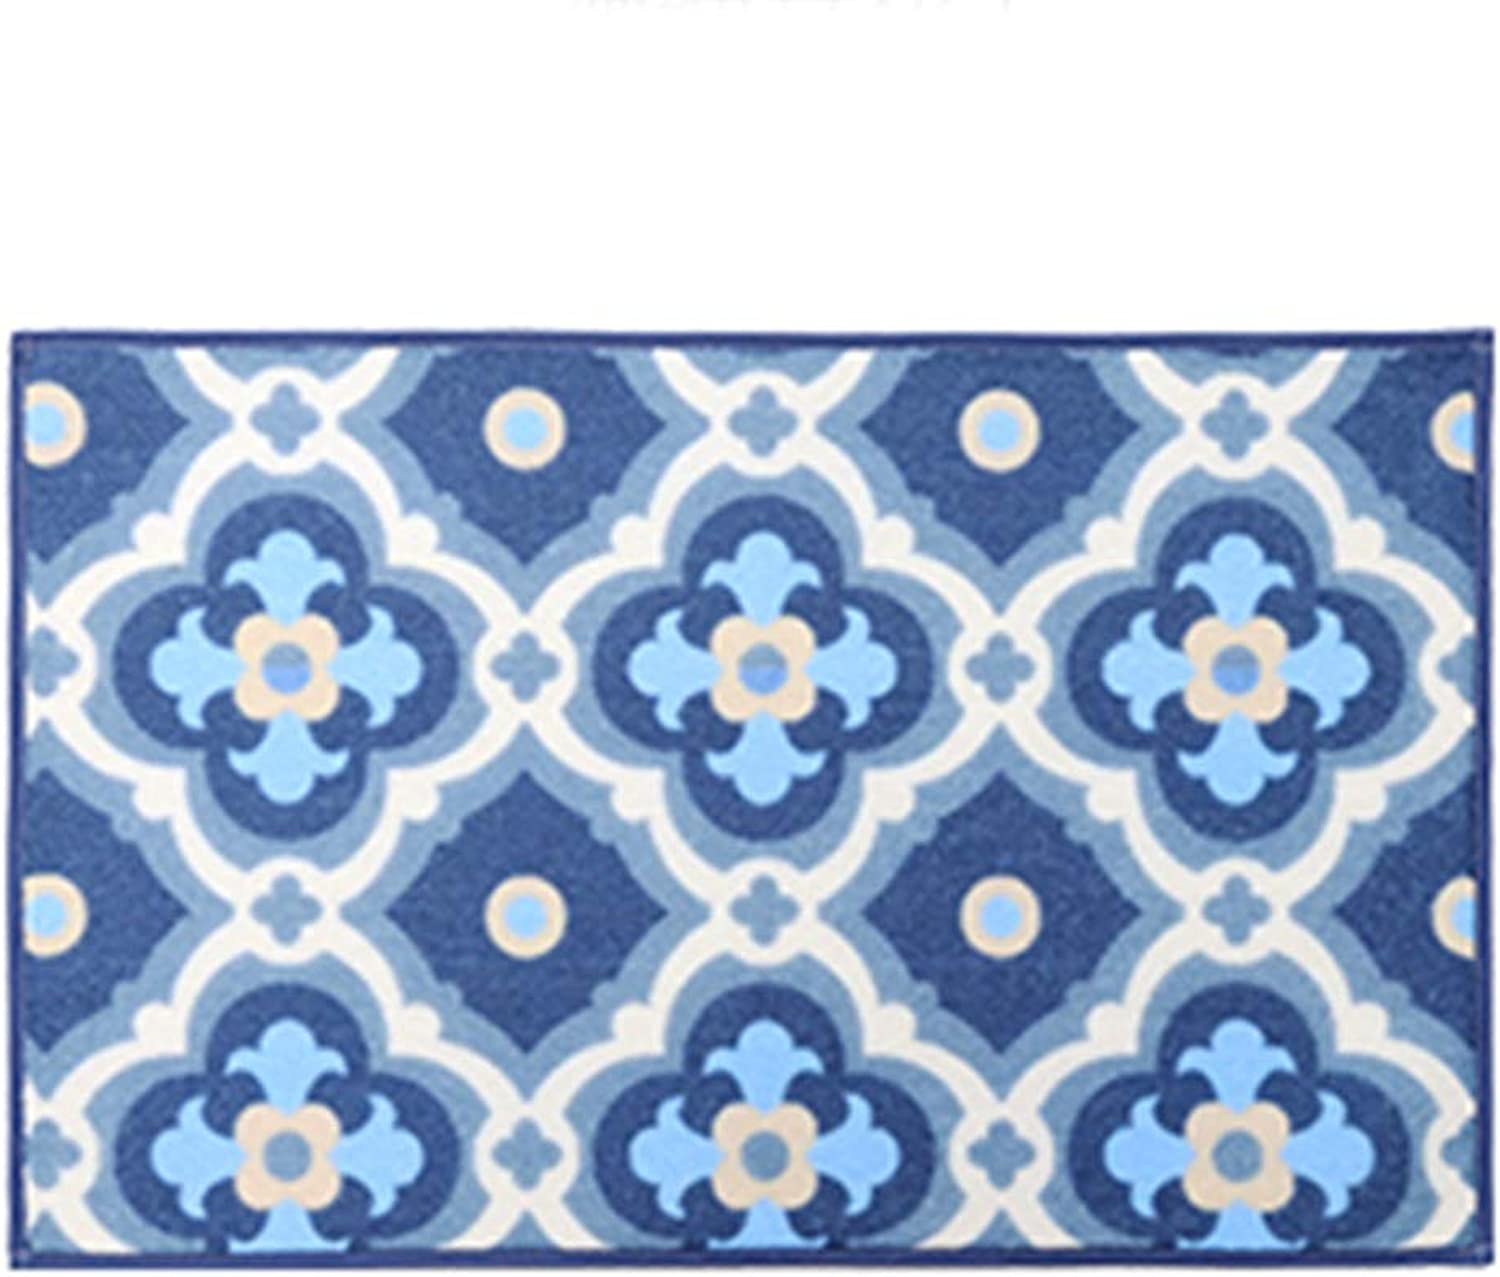 Door mat Floor mat - Nylon fabric, absorbent and non-slip, easy to clean, geometric pattern, kitchen floor mats door mats home bedroom mat bathroom mat bathroom absorbent carpet - 3 sizes, 3 styles av